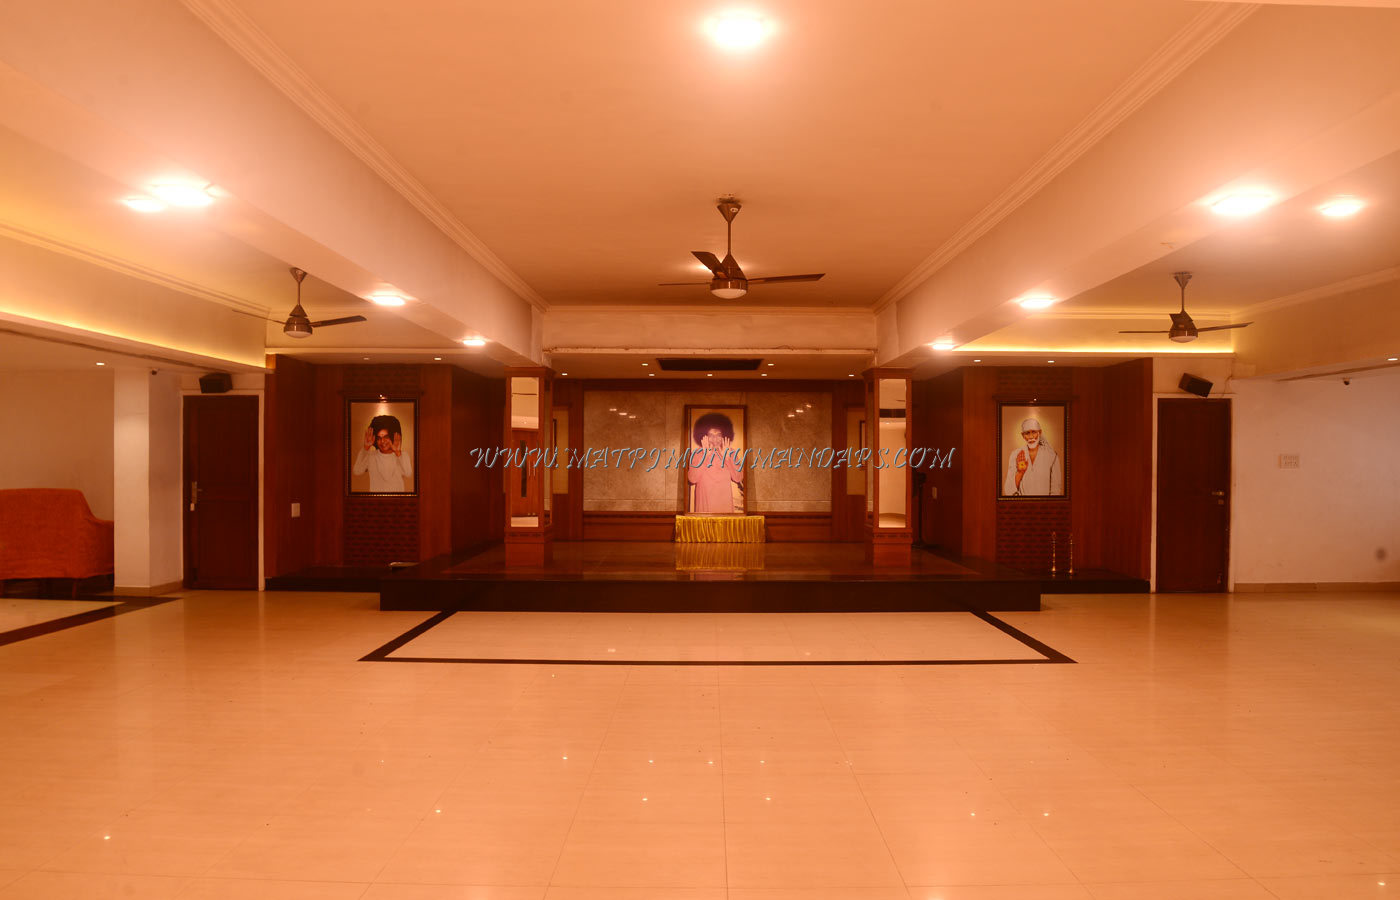 Find the availability of the S Halls (A/C) in RA Puram, Chennai and avail special offers